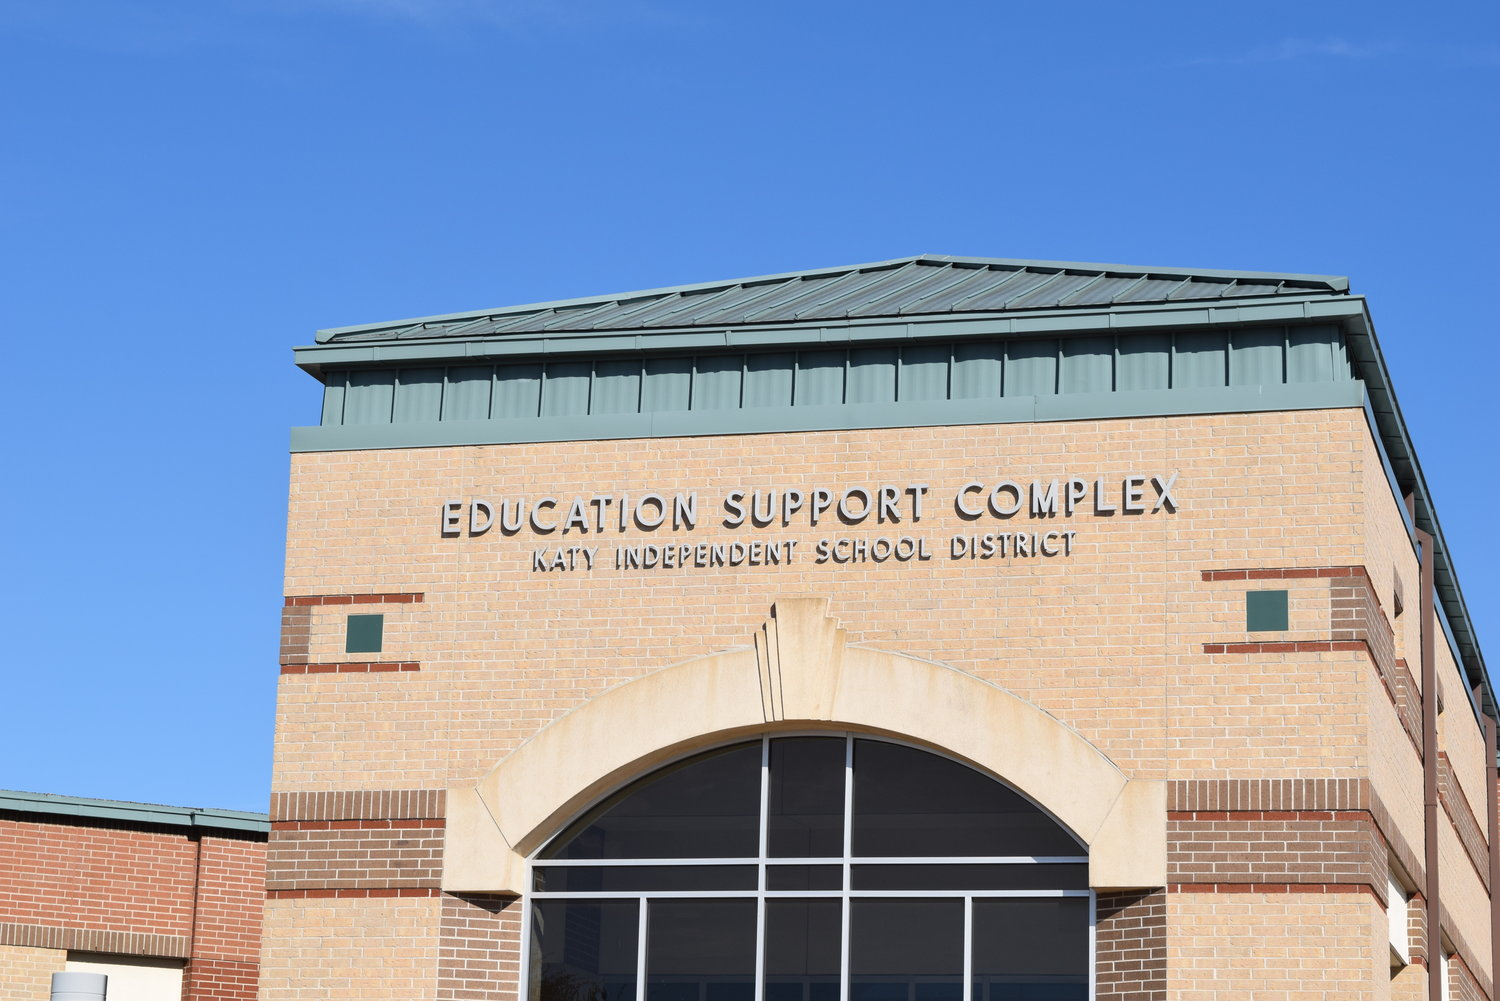 The Katy ISD Board of Trustees met virtually Tuesday evening due to the COVID-19 pandemic rather than at the Education Support Complex pictured above, which is their usual meeting place.